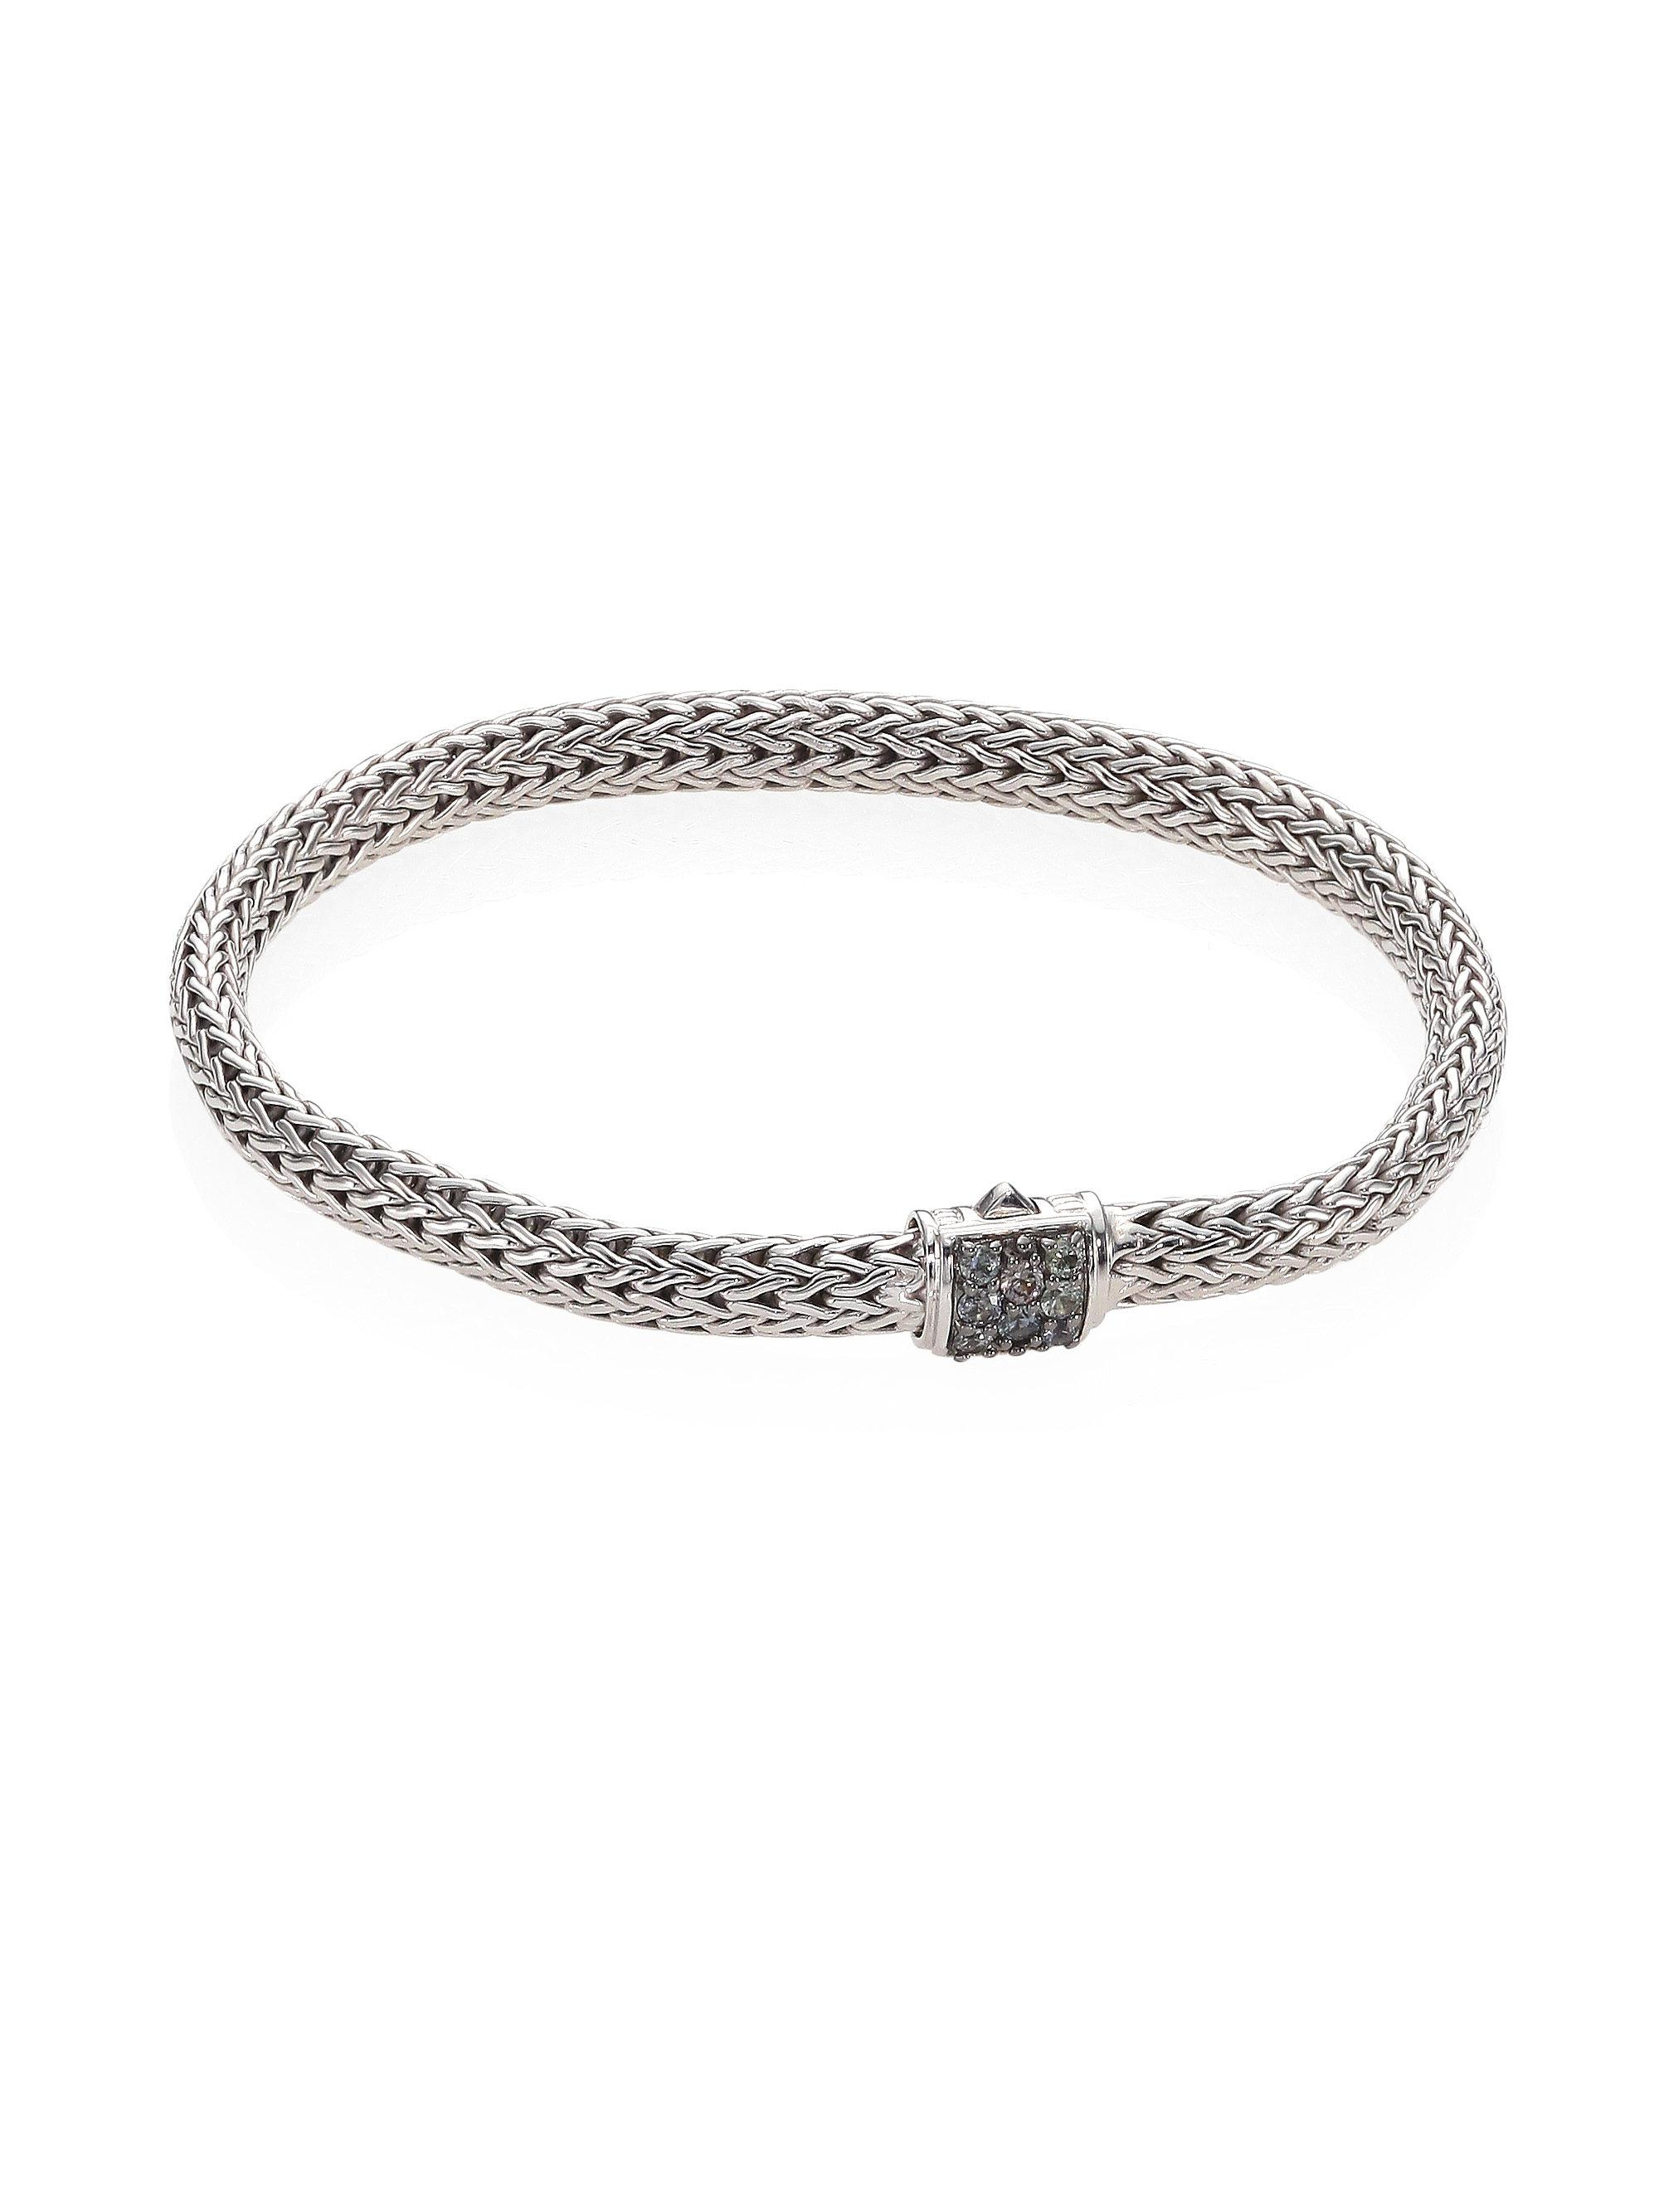 bracelet details small chic ori woman gift delicate handmade jewelry minimalist trendy silver thin for